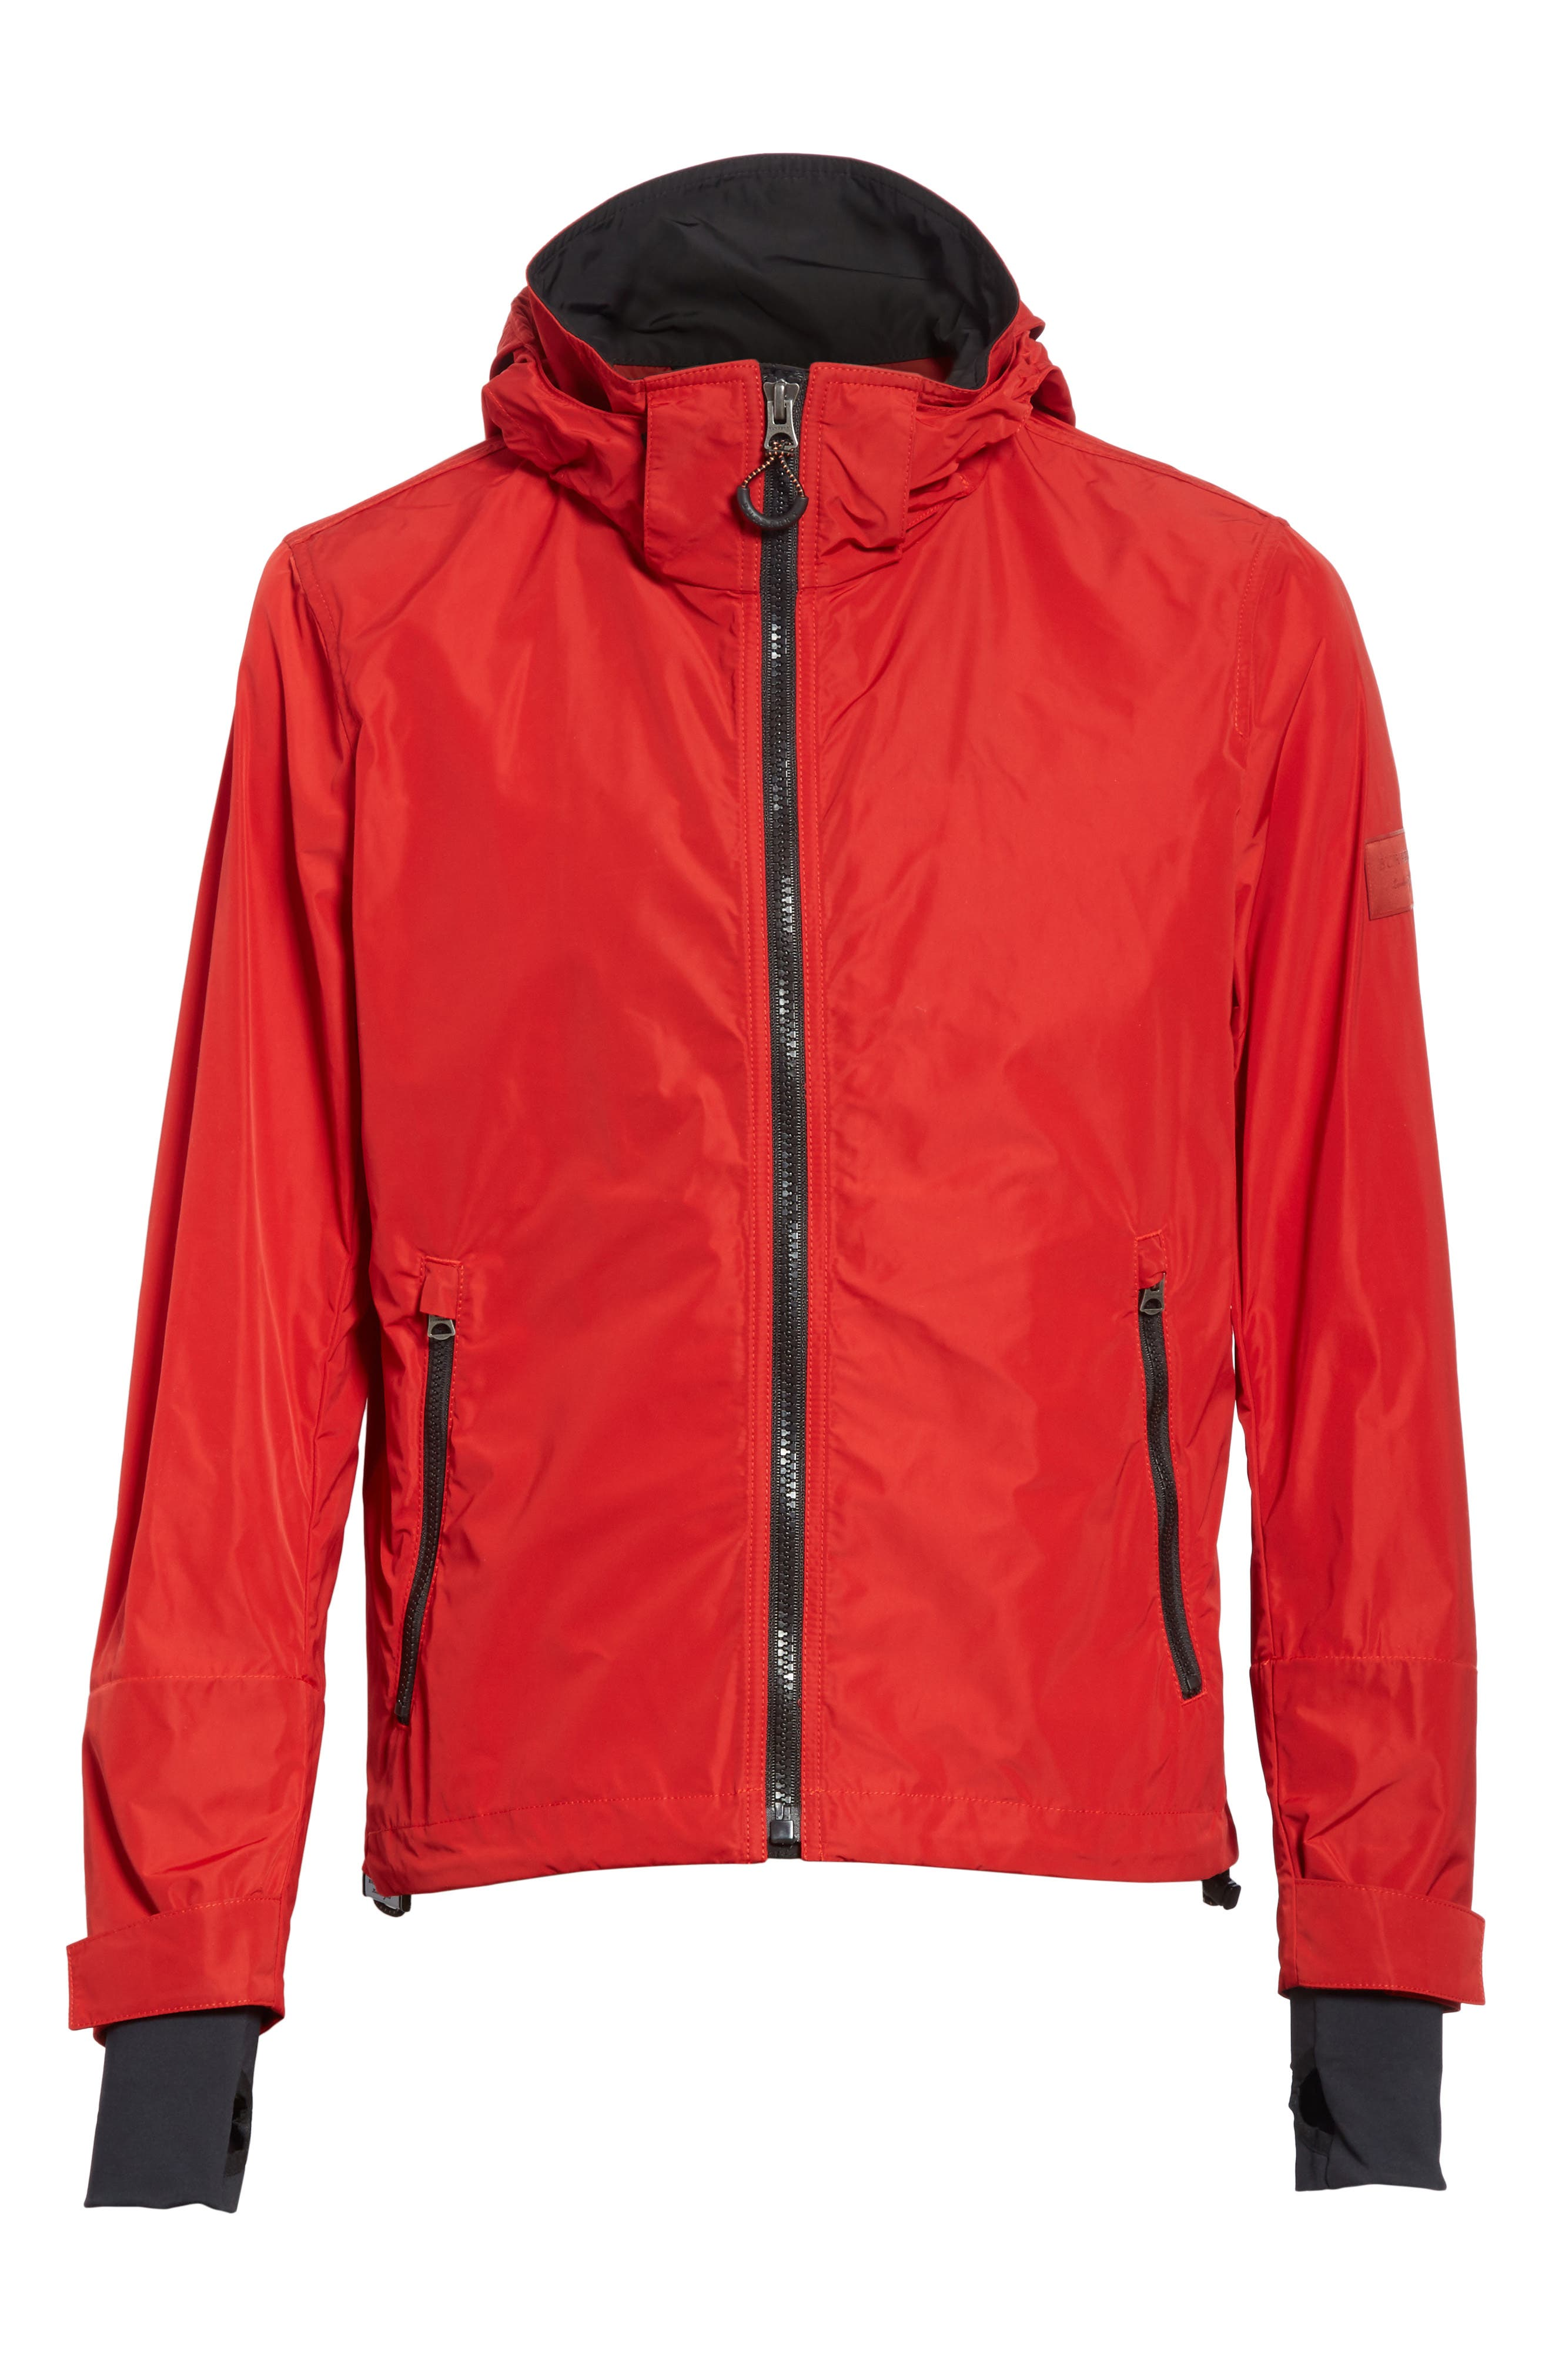 Headson Standard Fit Jacket,                             Alternate thumbnail 5, color,